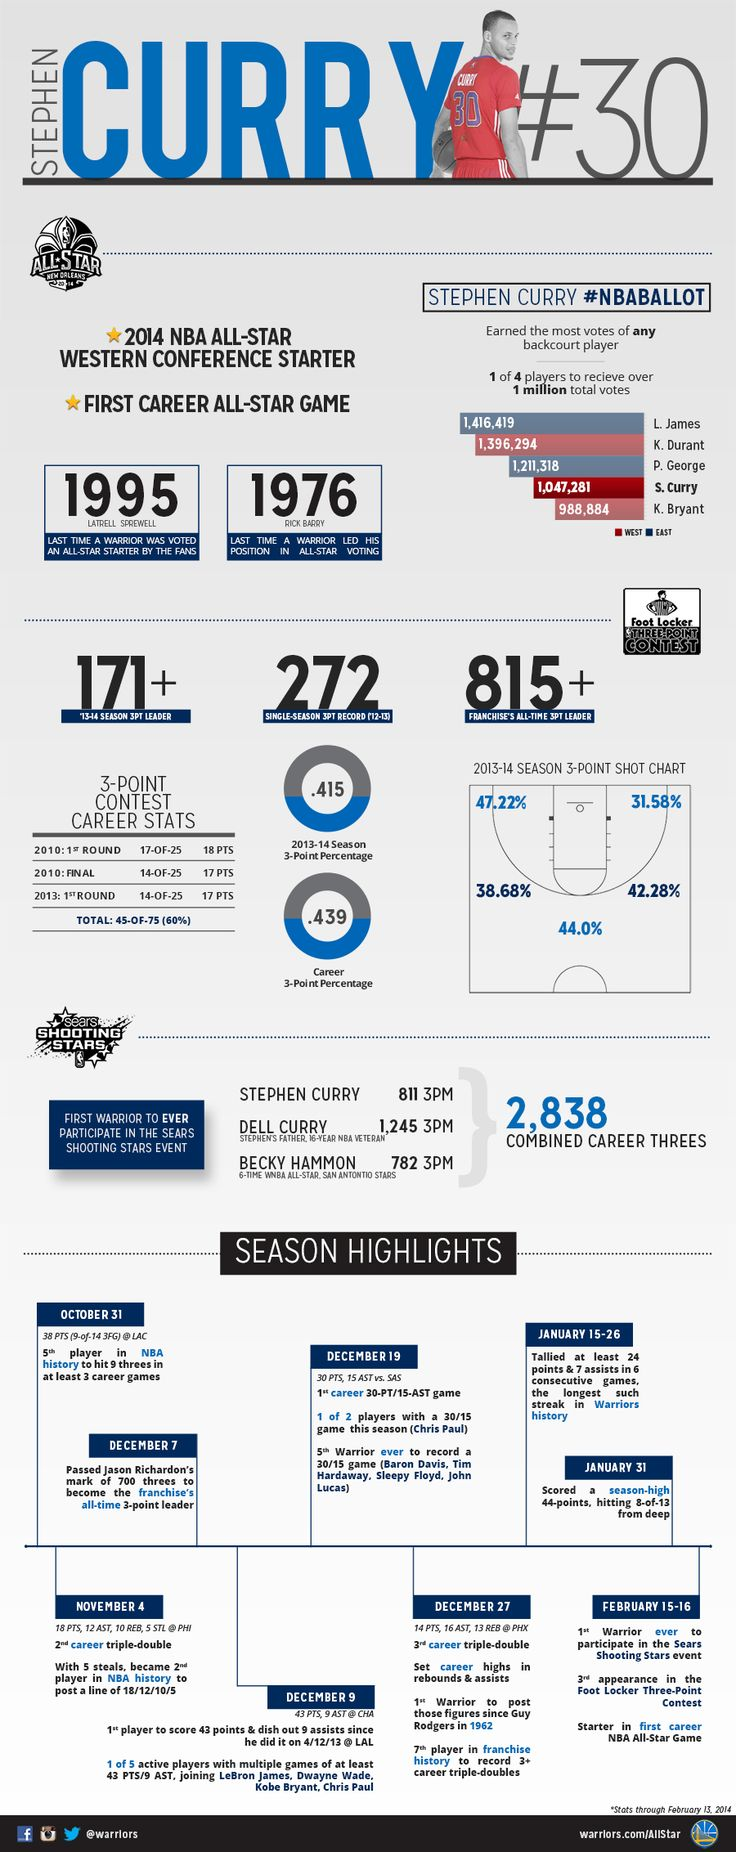 INFOGRAPHIC: Stephen Curry 2014 NBA All-Star